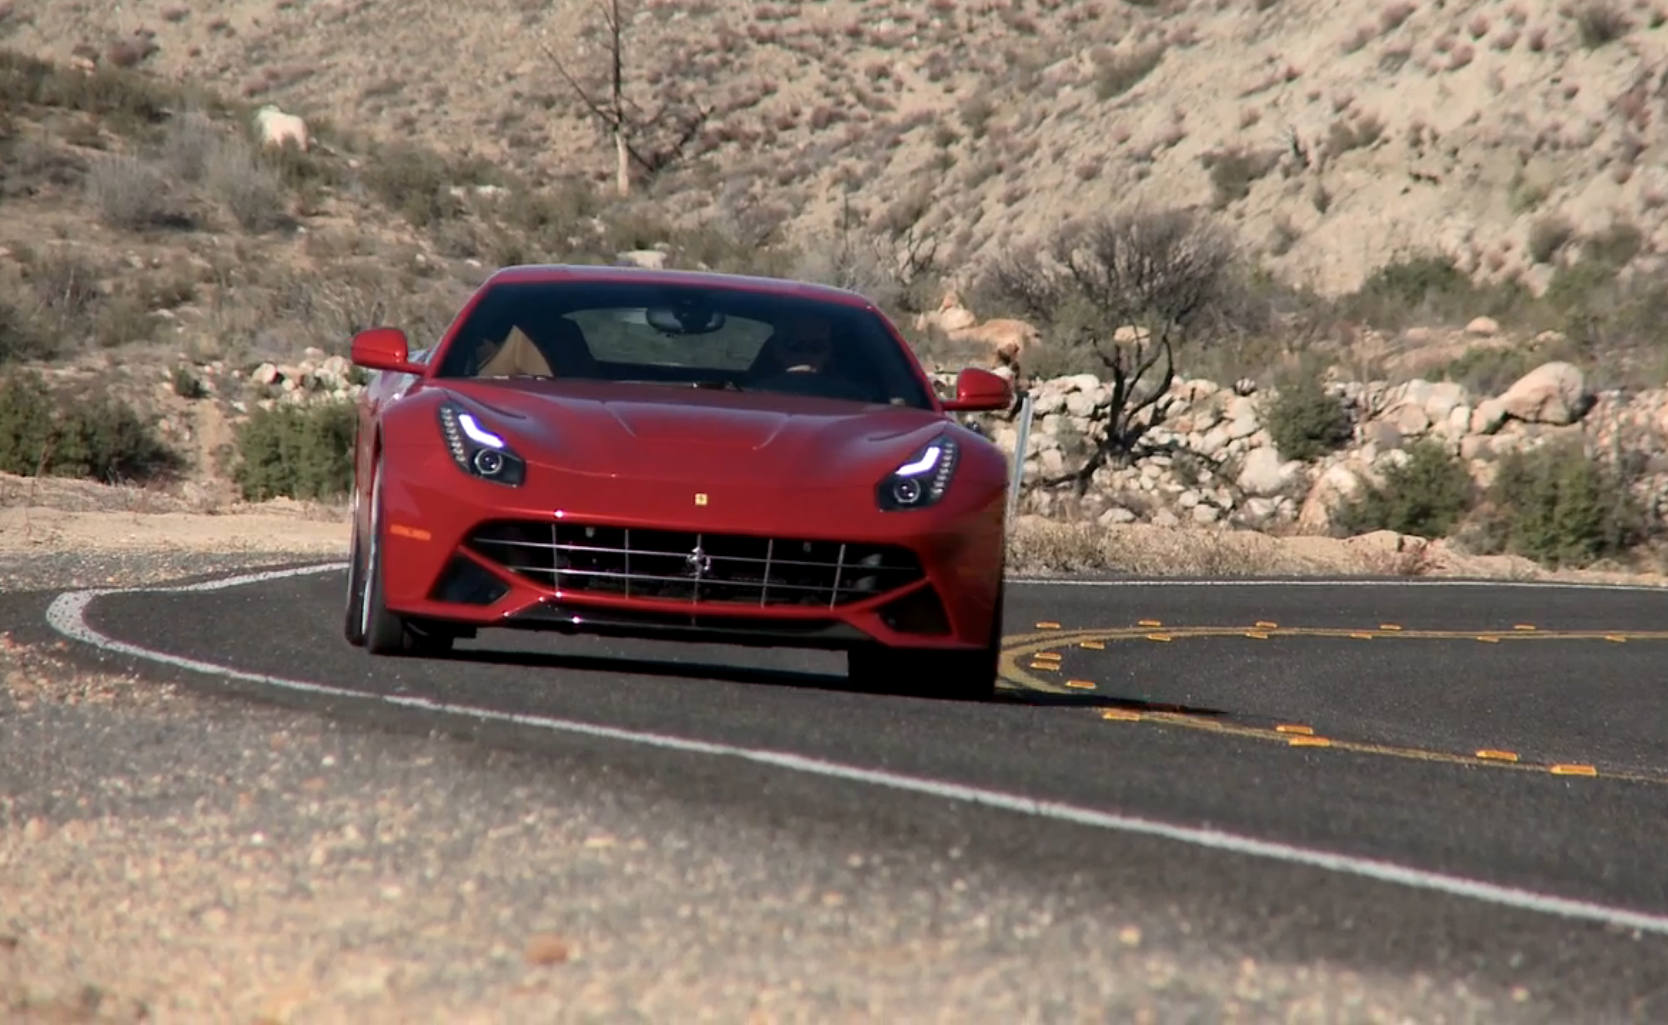 ferrari f12 berlinetta is a beast, but surprisingly well behaved